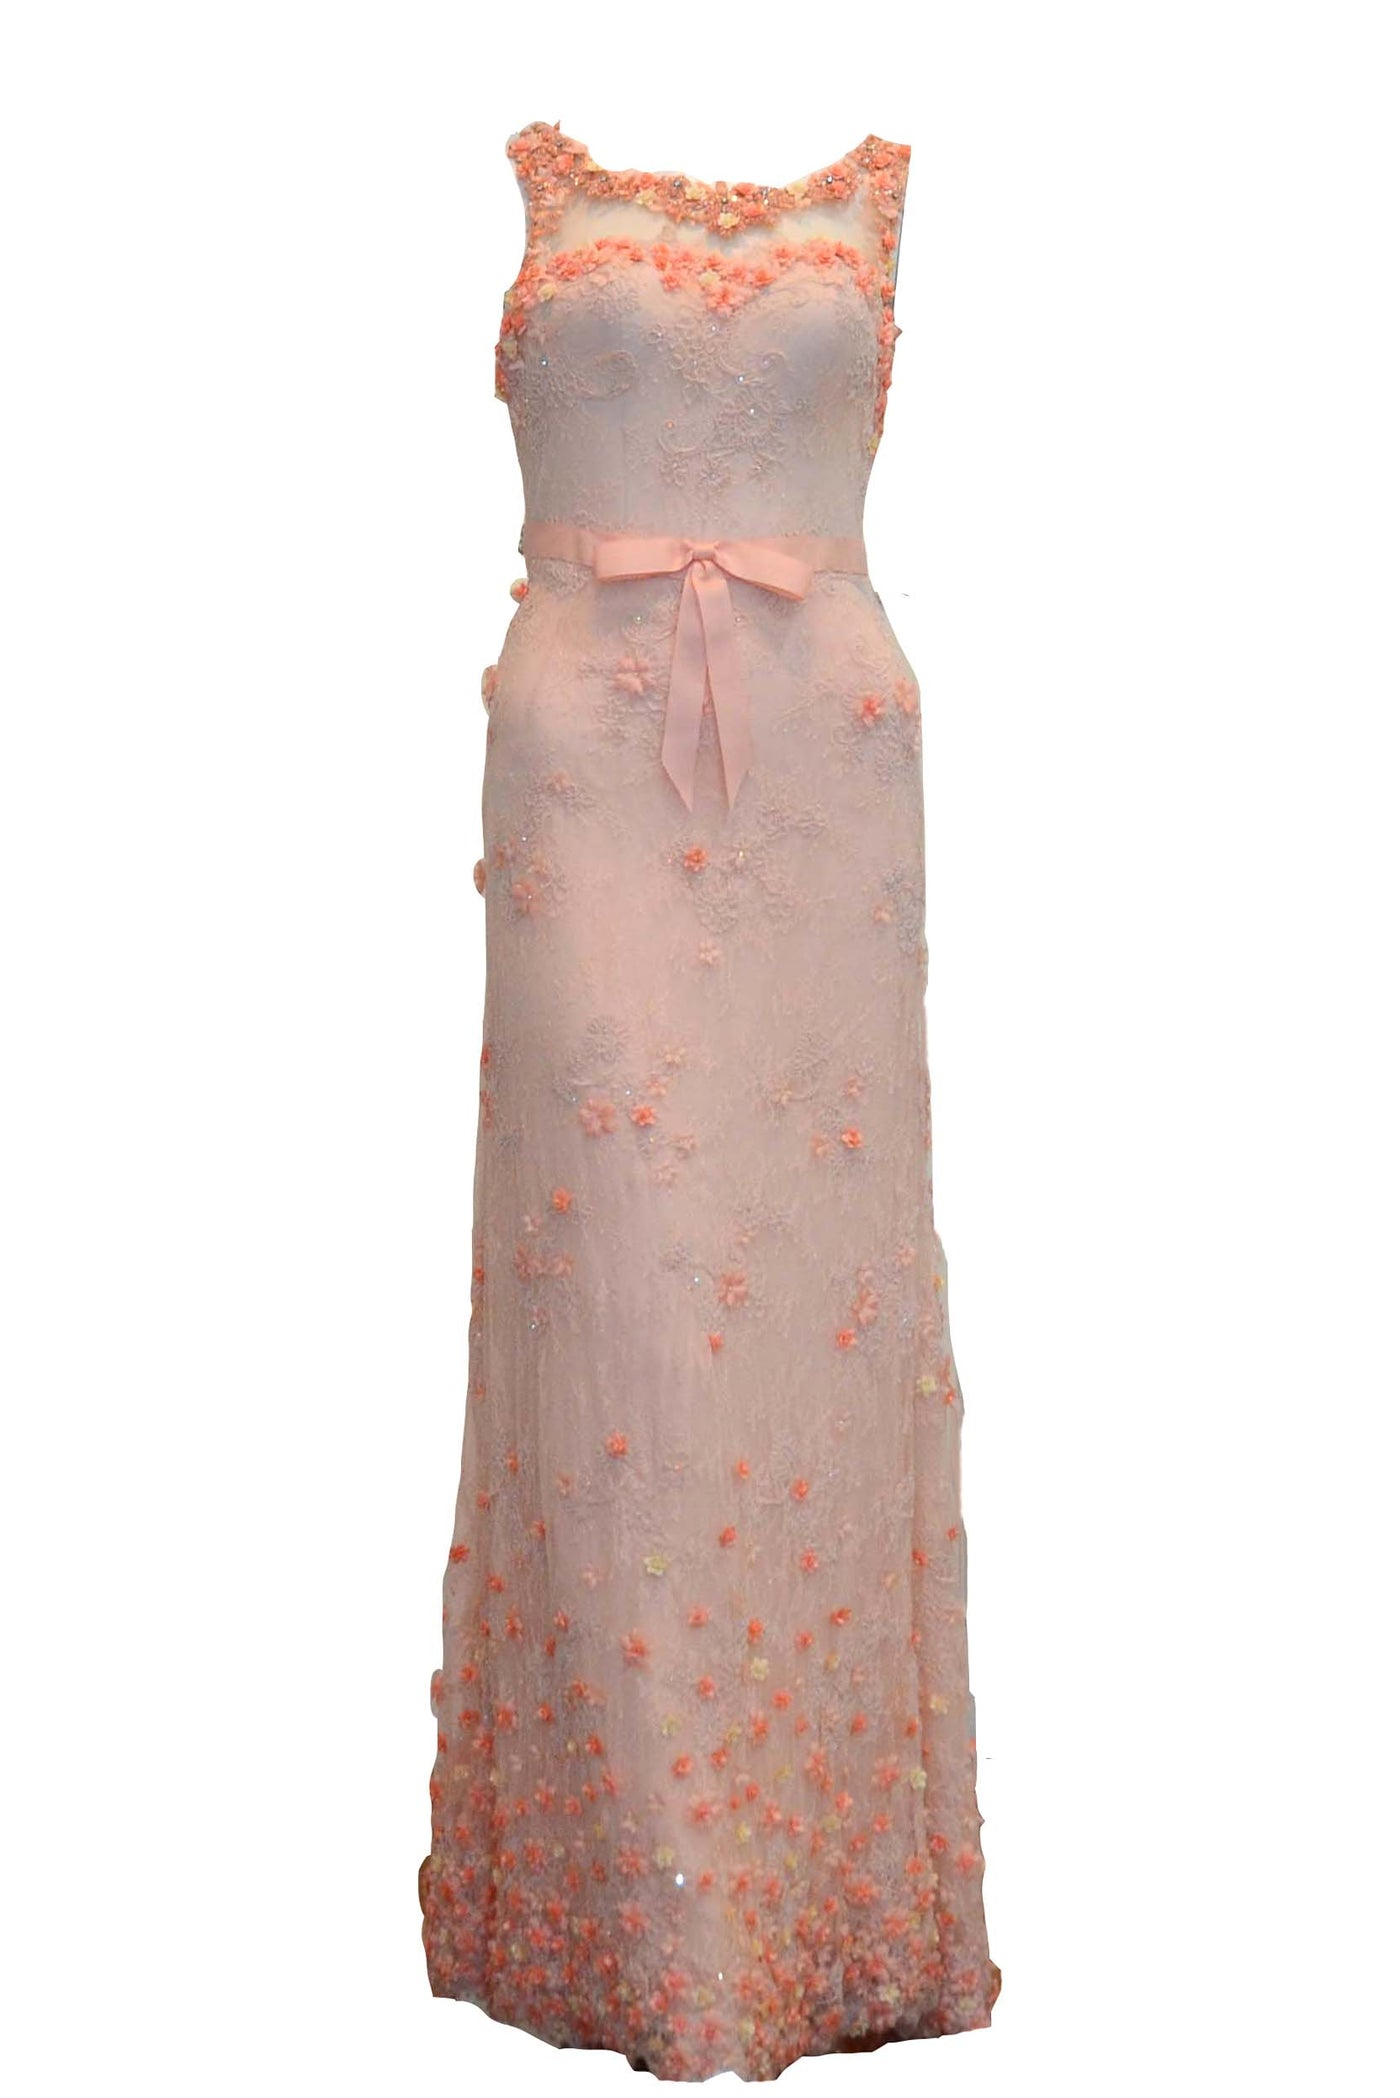 Sale: Andreas Odang Peach Sleeveless Flower Embroidery with Ribbon Gown